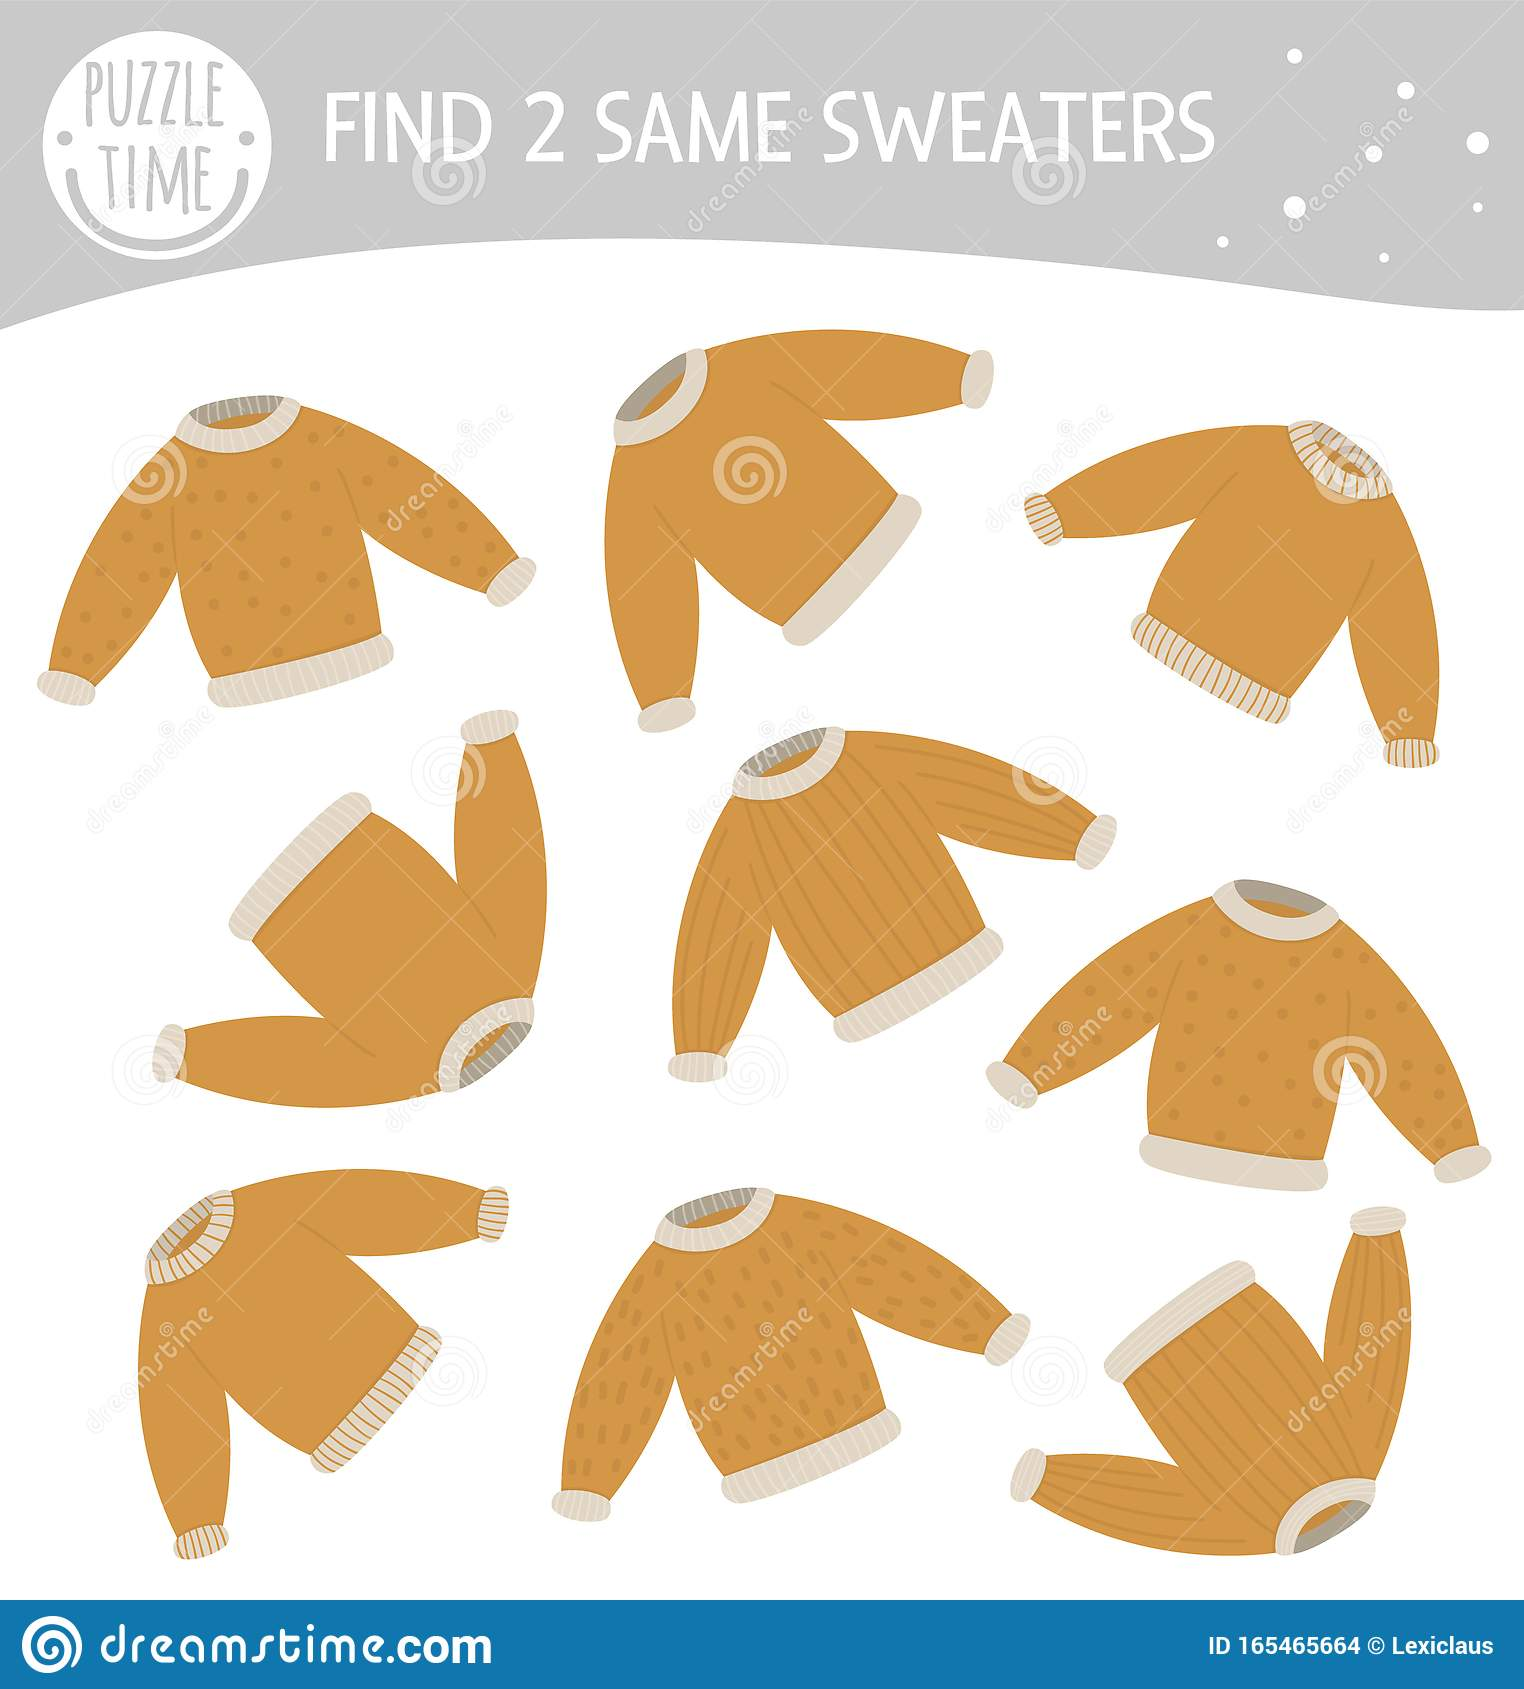 Find Two Same Sweaters Winter Matching Activity For